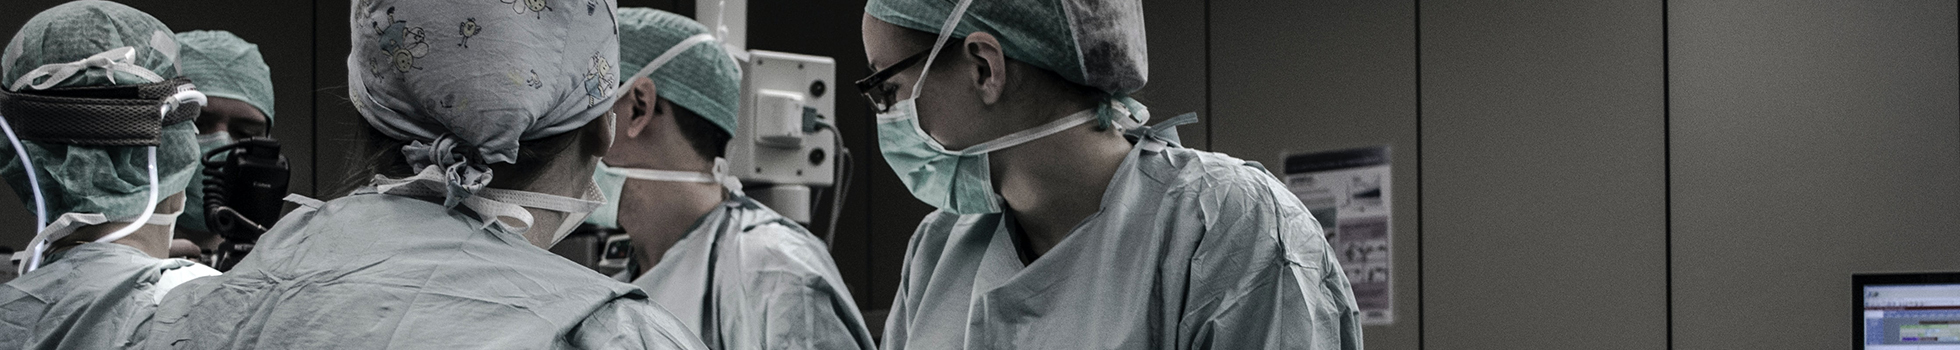 Medical team in surgery.